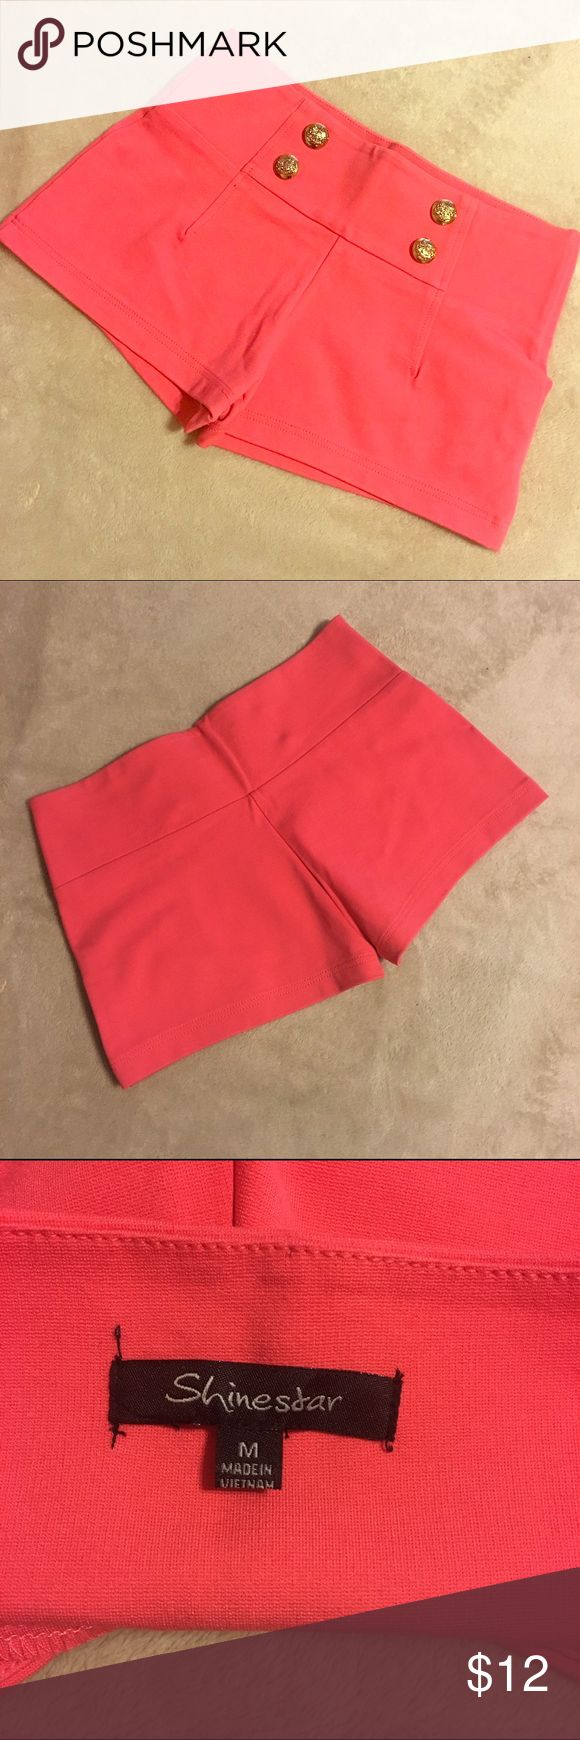 Women's Coral High-Waist Shorts- M High-waisted military-style shorts with gold buttons on front. Stretch material. New without tags. Shinestar Shorts